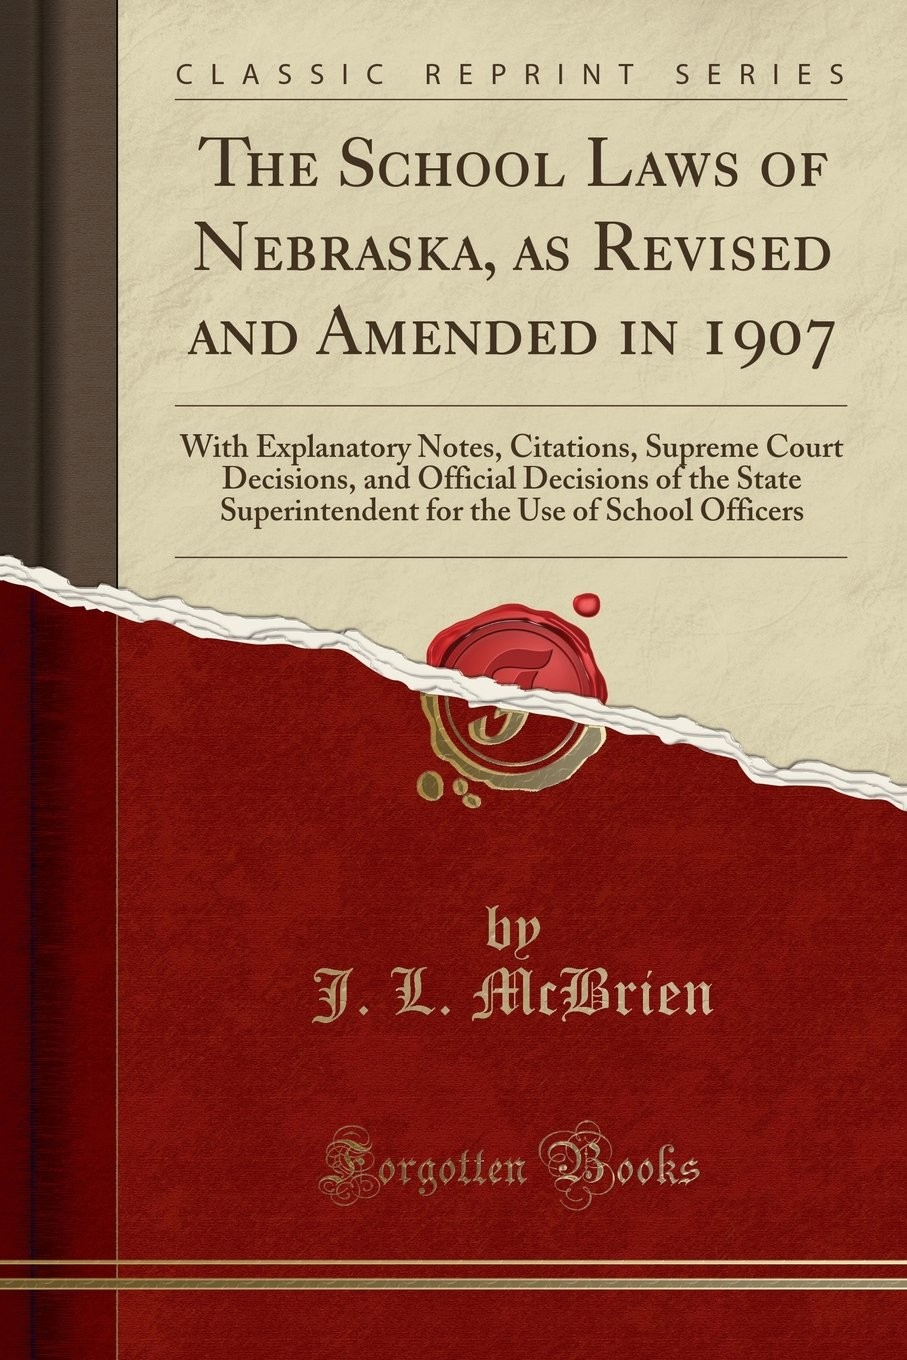 Read Online The School Laws of Nebraska, as Revised and Amended in 1907: With Explanatory Notes, Citations, Supreme Court Decisions, and Official Decisions of the ... the Use of School Officers (Classic Reprint) ebook